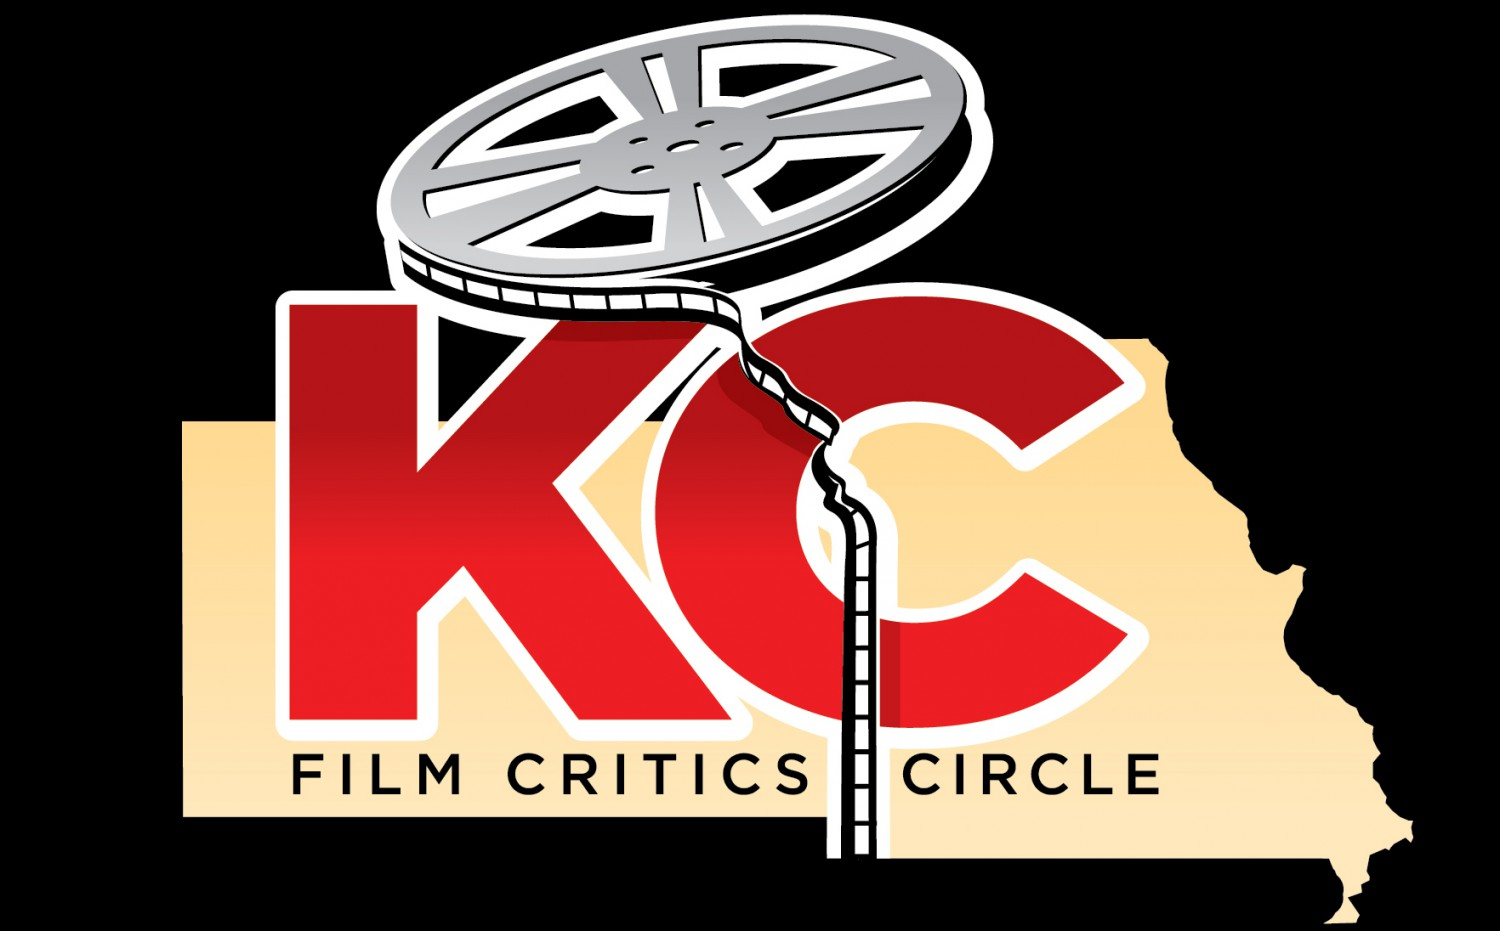 film critics Movie criticism is a field dominated by white men, according to a new study by  researchers at usc annenberg school for communication and.